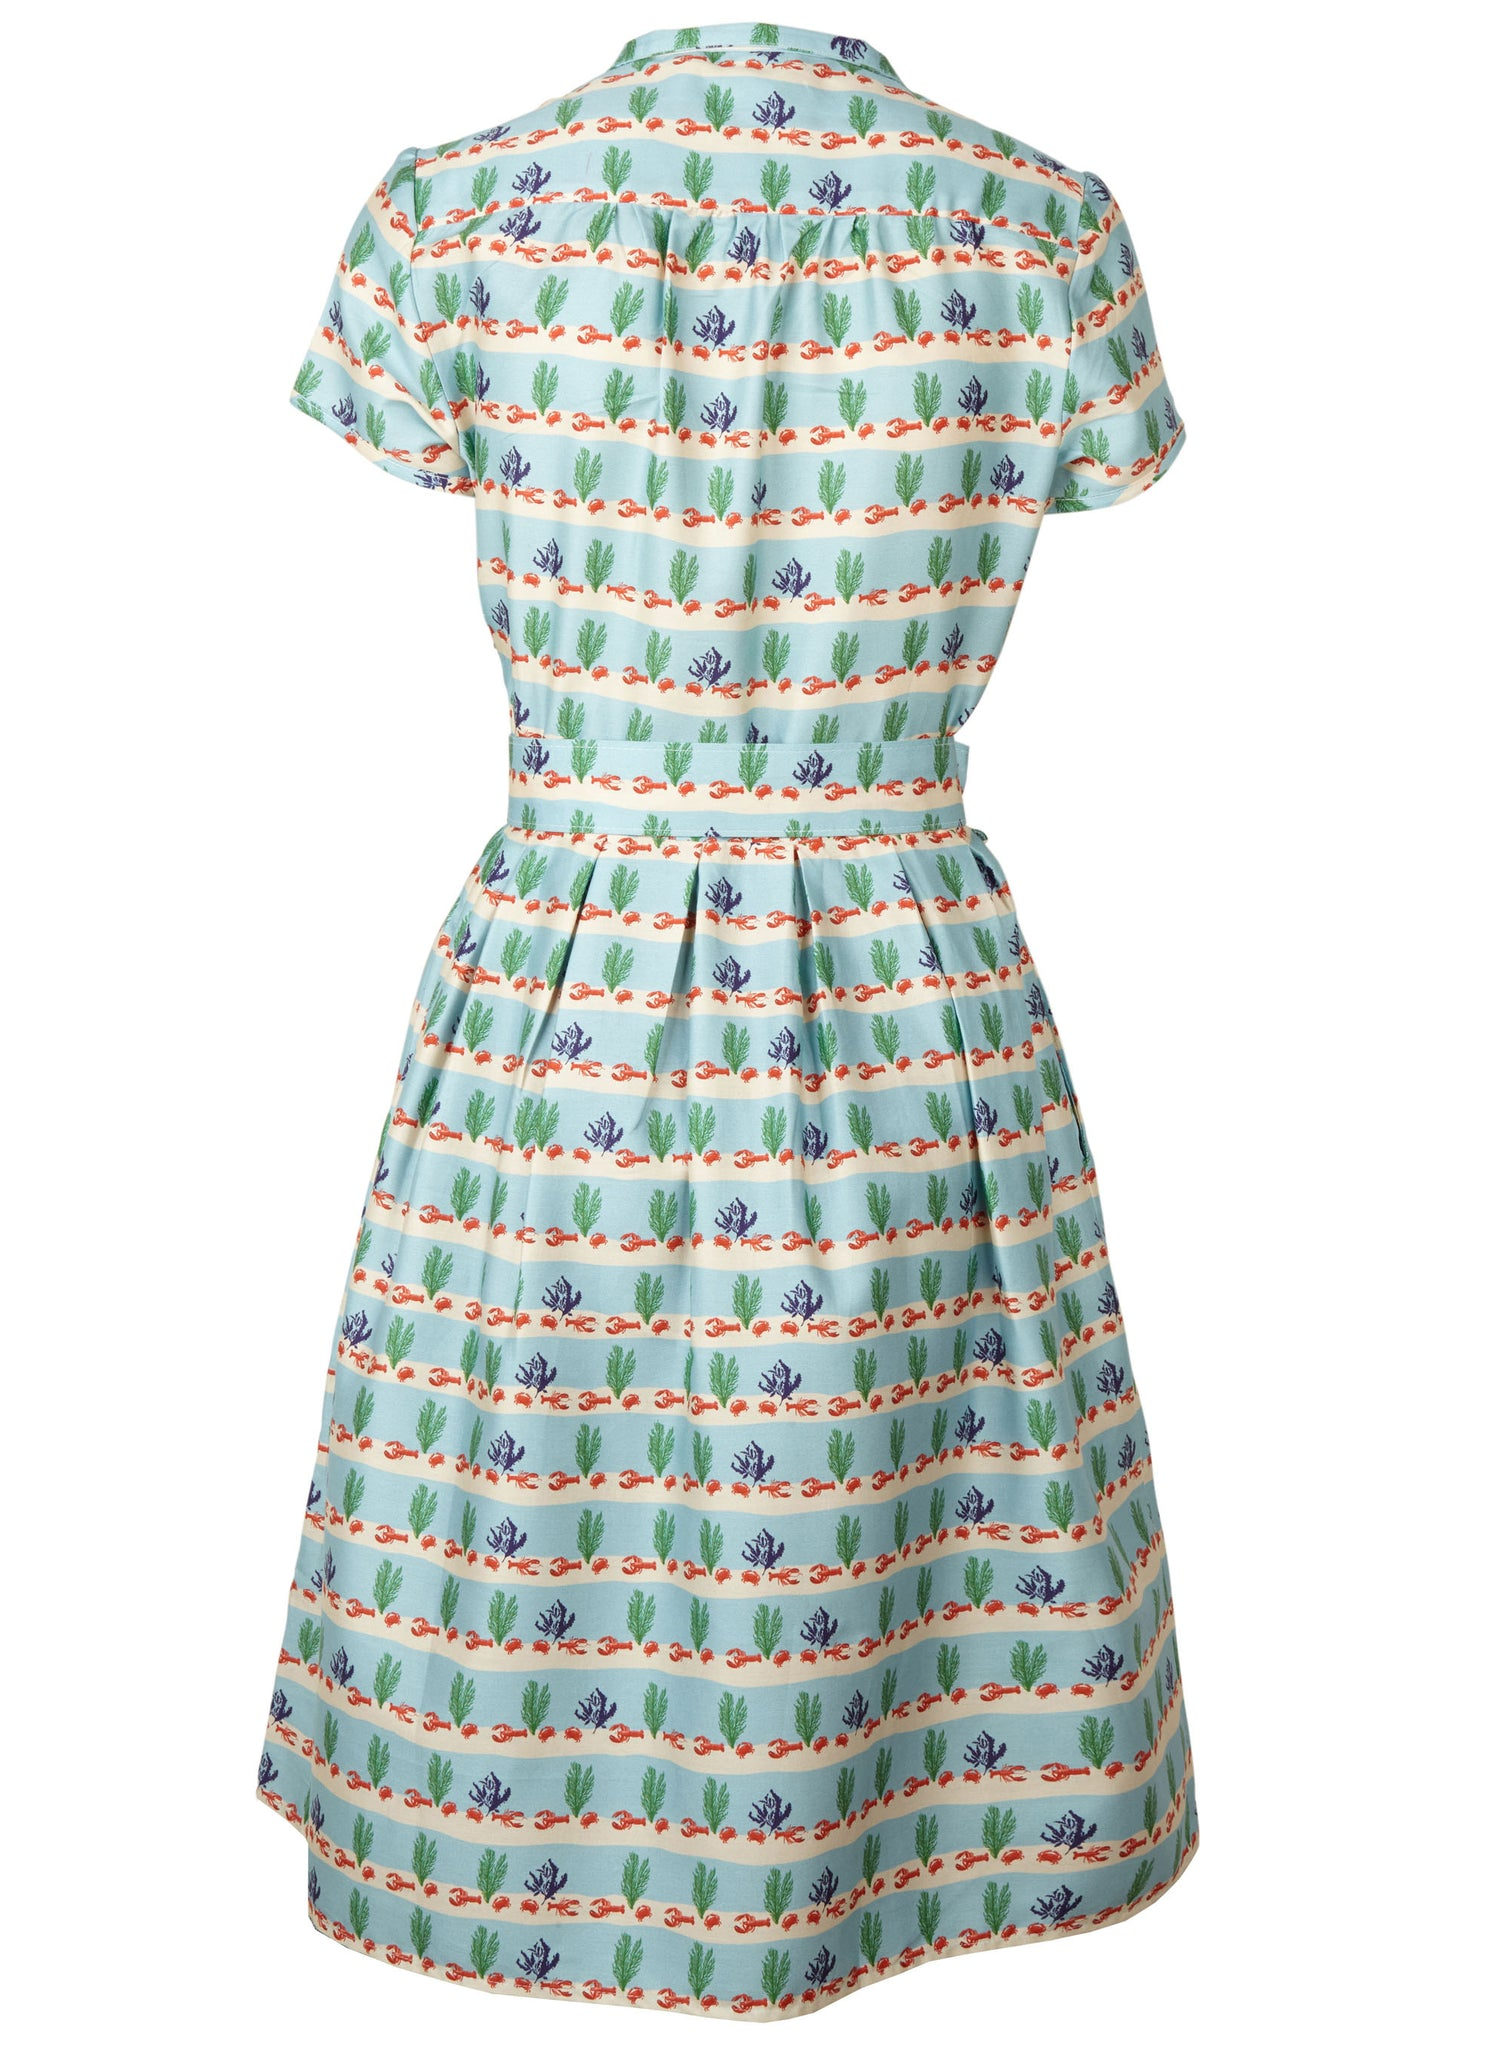 Louise - Lobster Rows Print Vintage-style Shirt Dress for Women